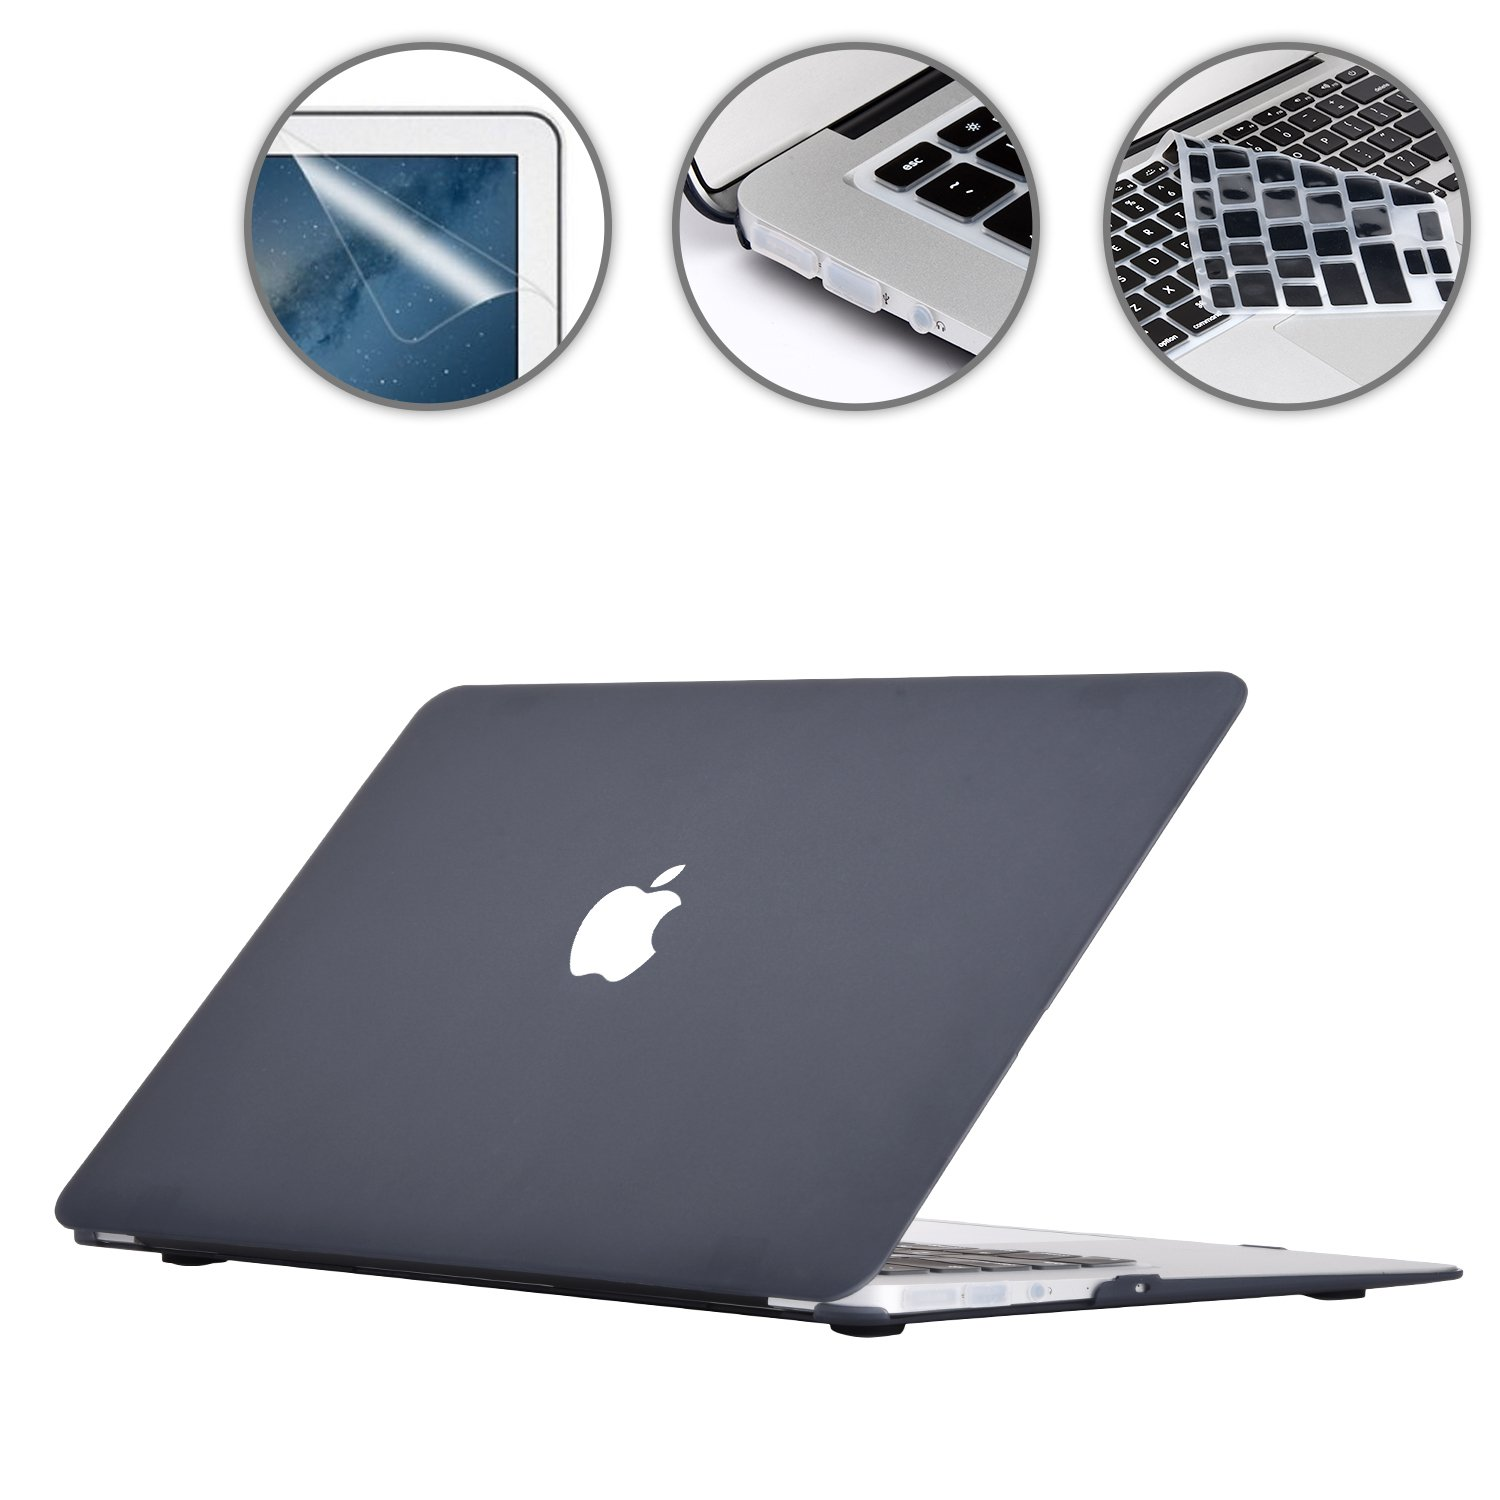 Applefuns(TM) 4 in 1 Kit Matte Hard Shell Case + Keyboard Cover + Screen Protector + Dust Plug for Macbook Air 13'' A1369 A1466 (black)